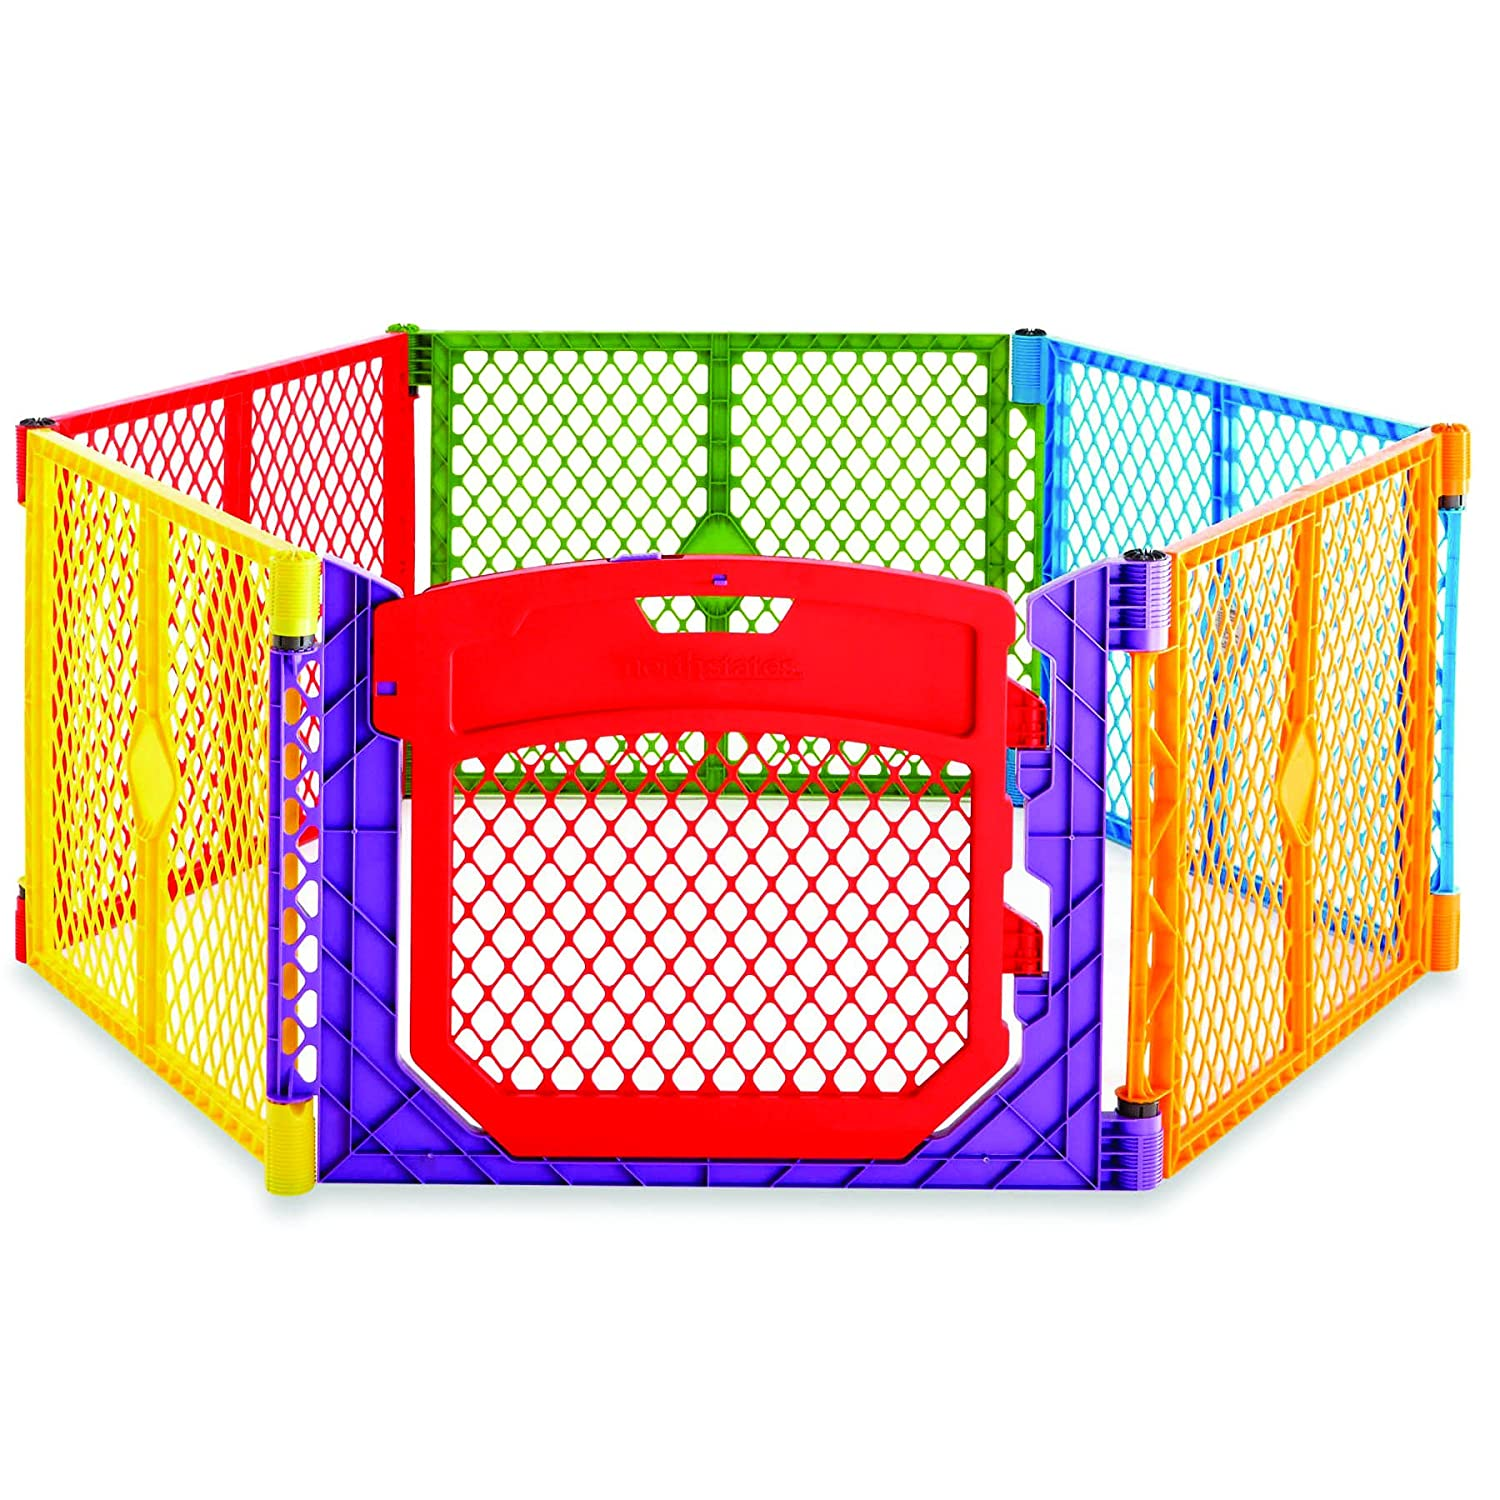 North State Super Yard Color Play Ultimate Gate, Red, Blue, Green, Yellow North States 868751